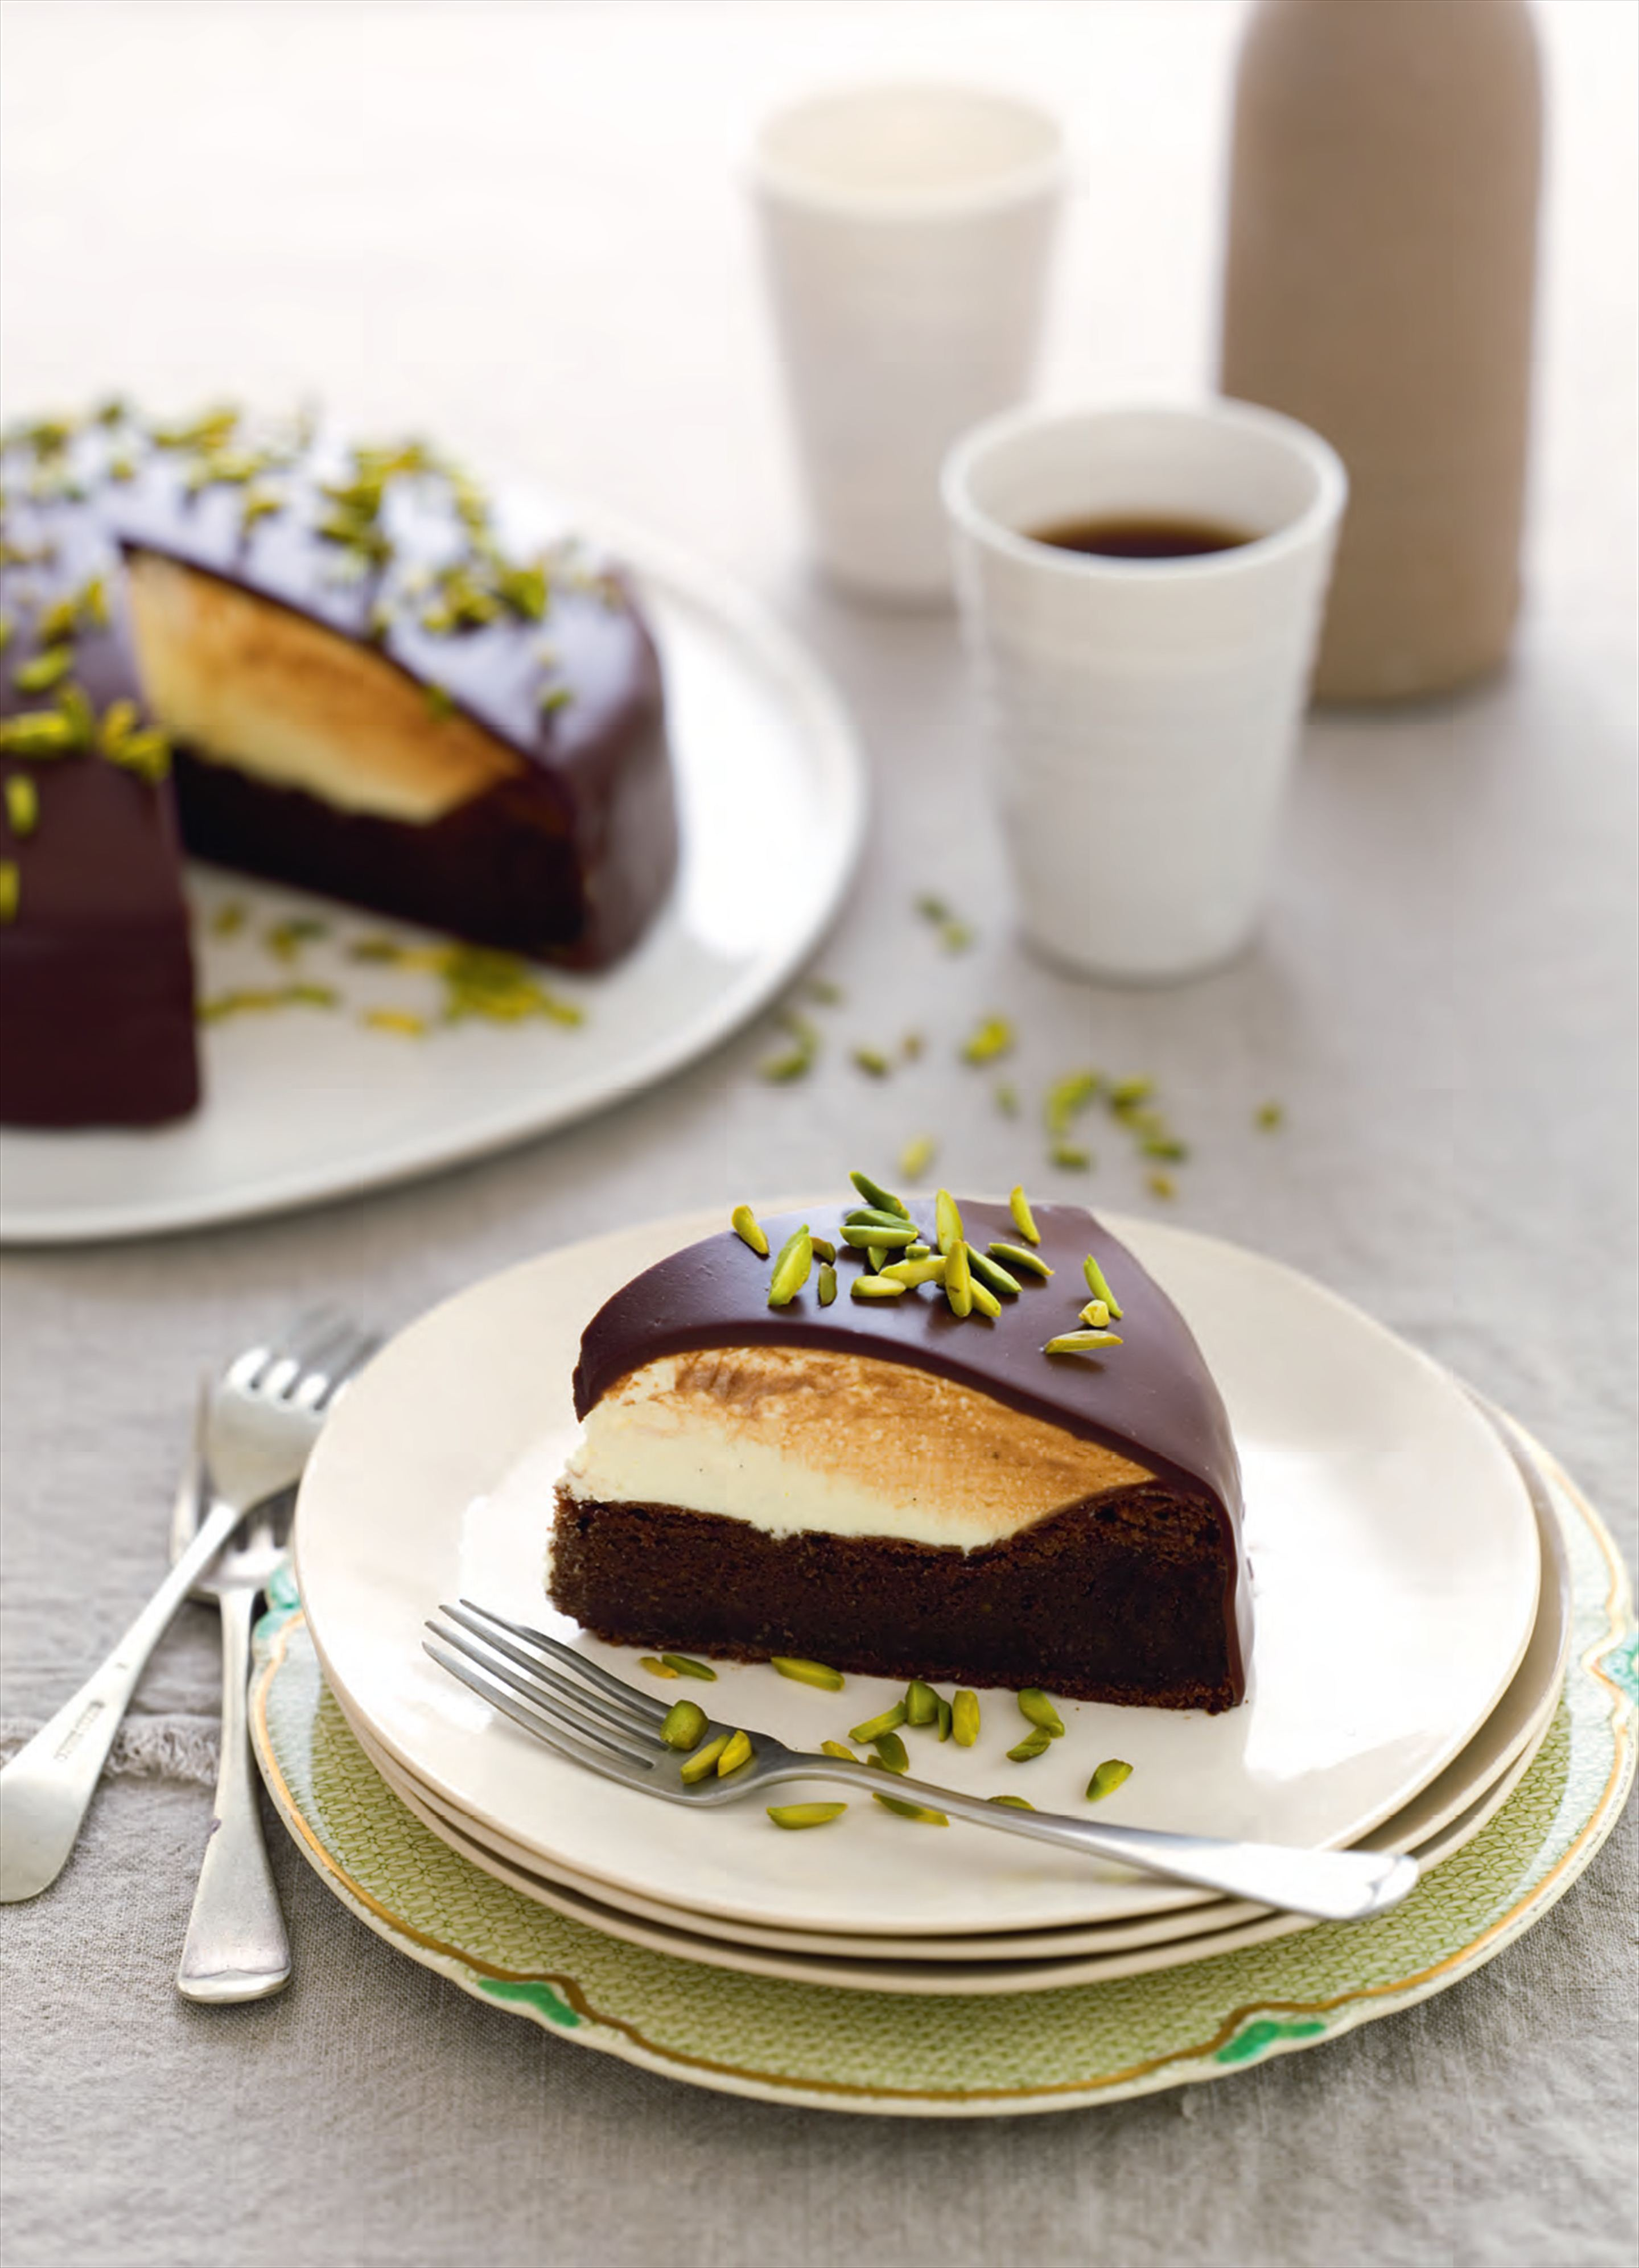 Chocolate pistachio cake